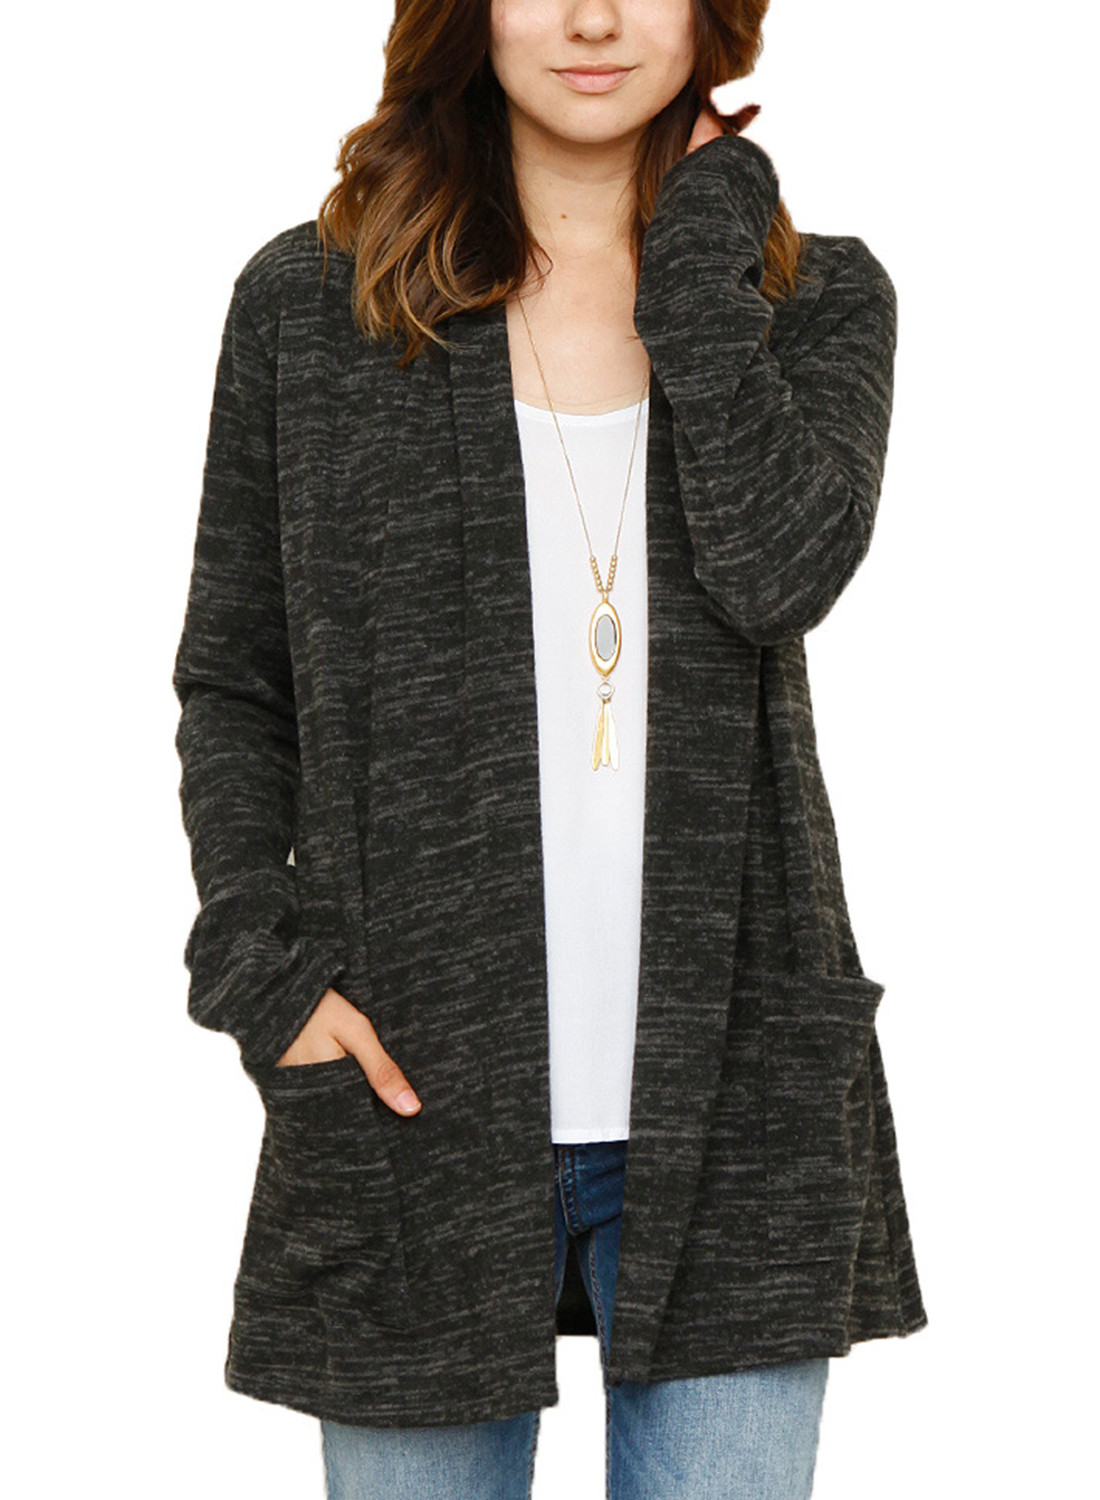 Knit Cardigan New Women S Long Sleeve solid Color Open Front Knit Cardigan Of Delightful 41 Ideas Knit Cardigan